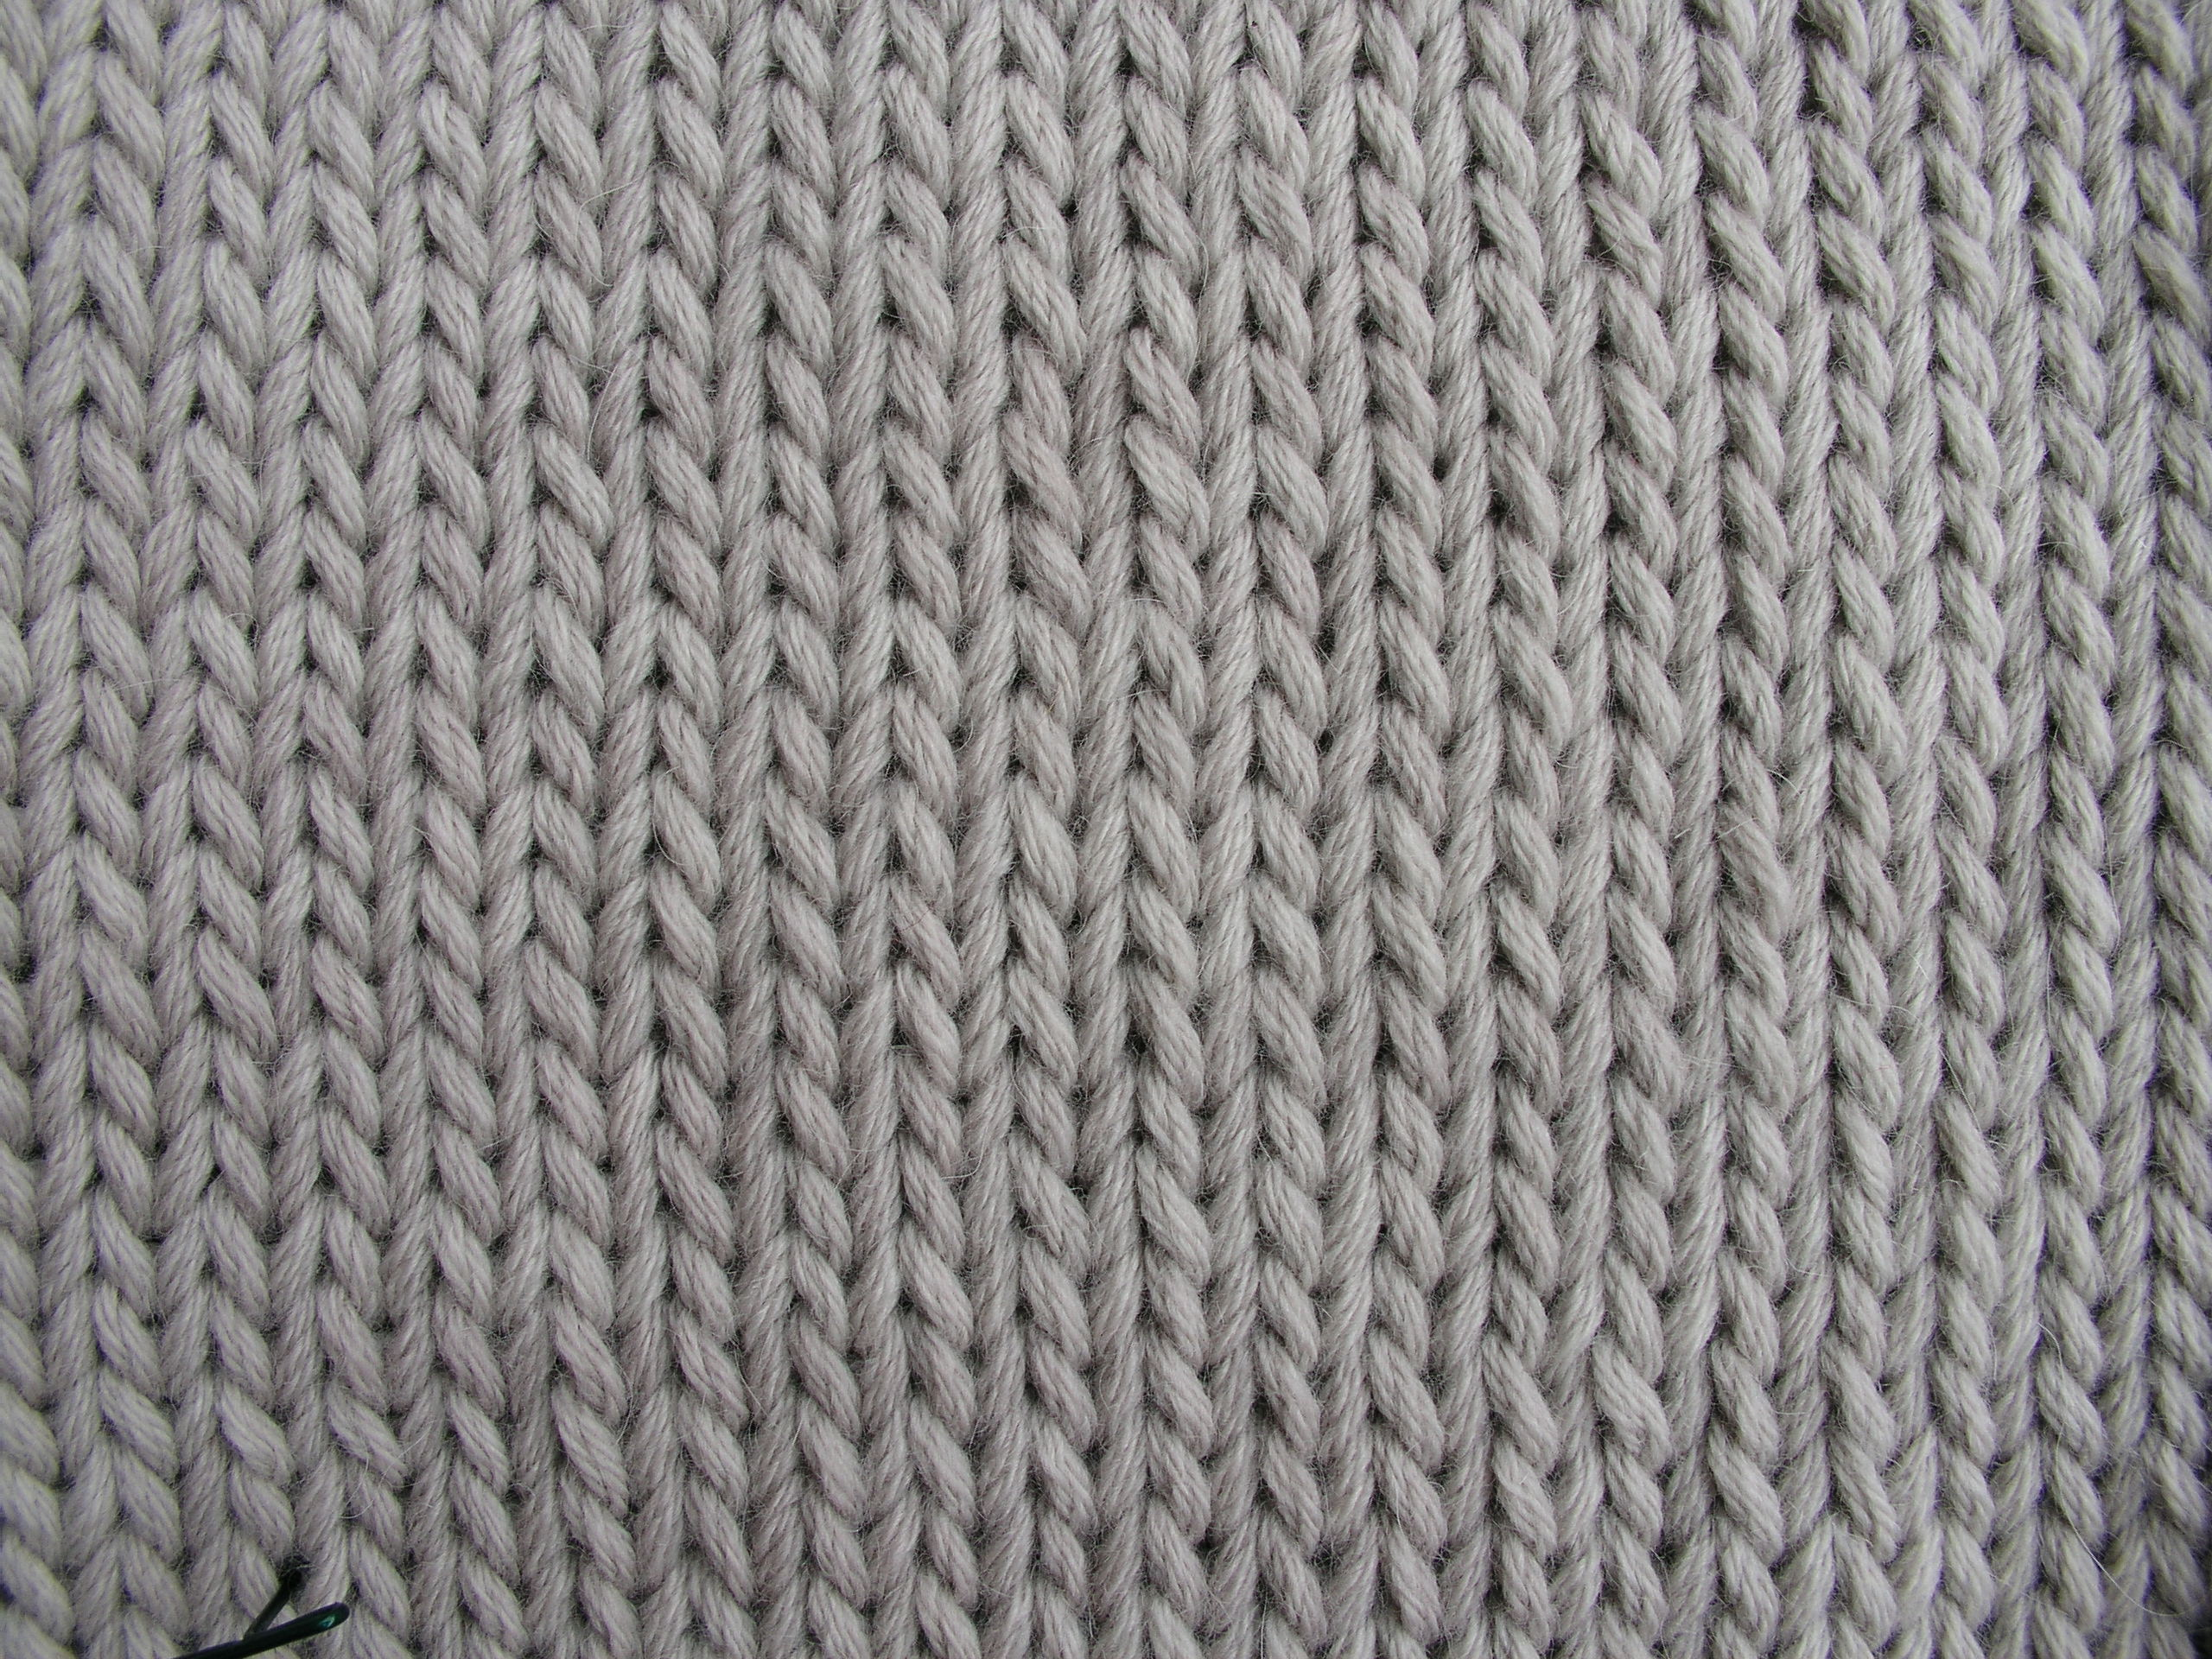 Knit Material : Knit Wallpaper at Brooklyn Craft Company Spoonflower Blog